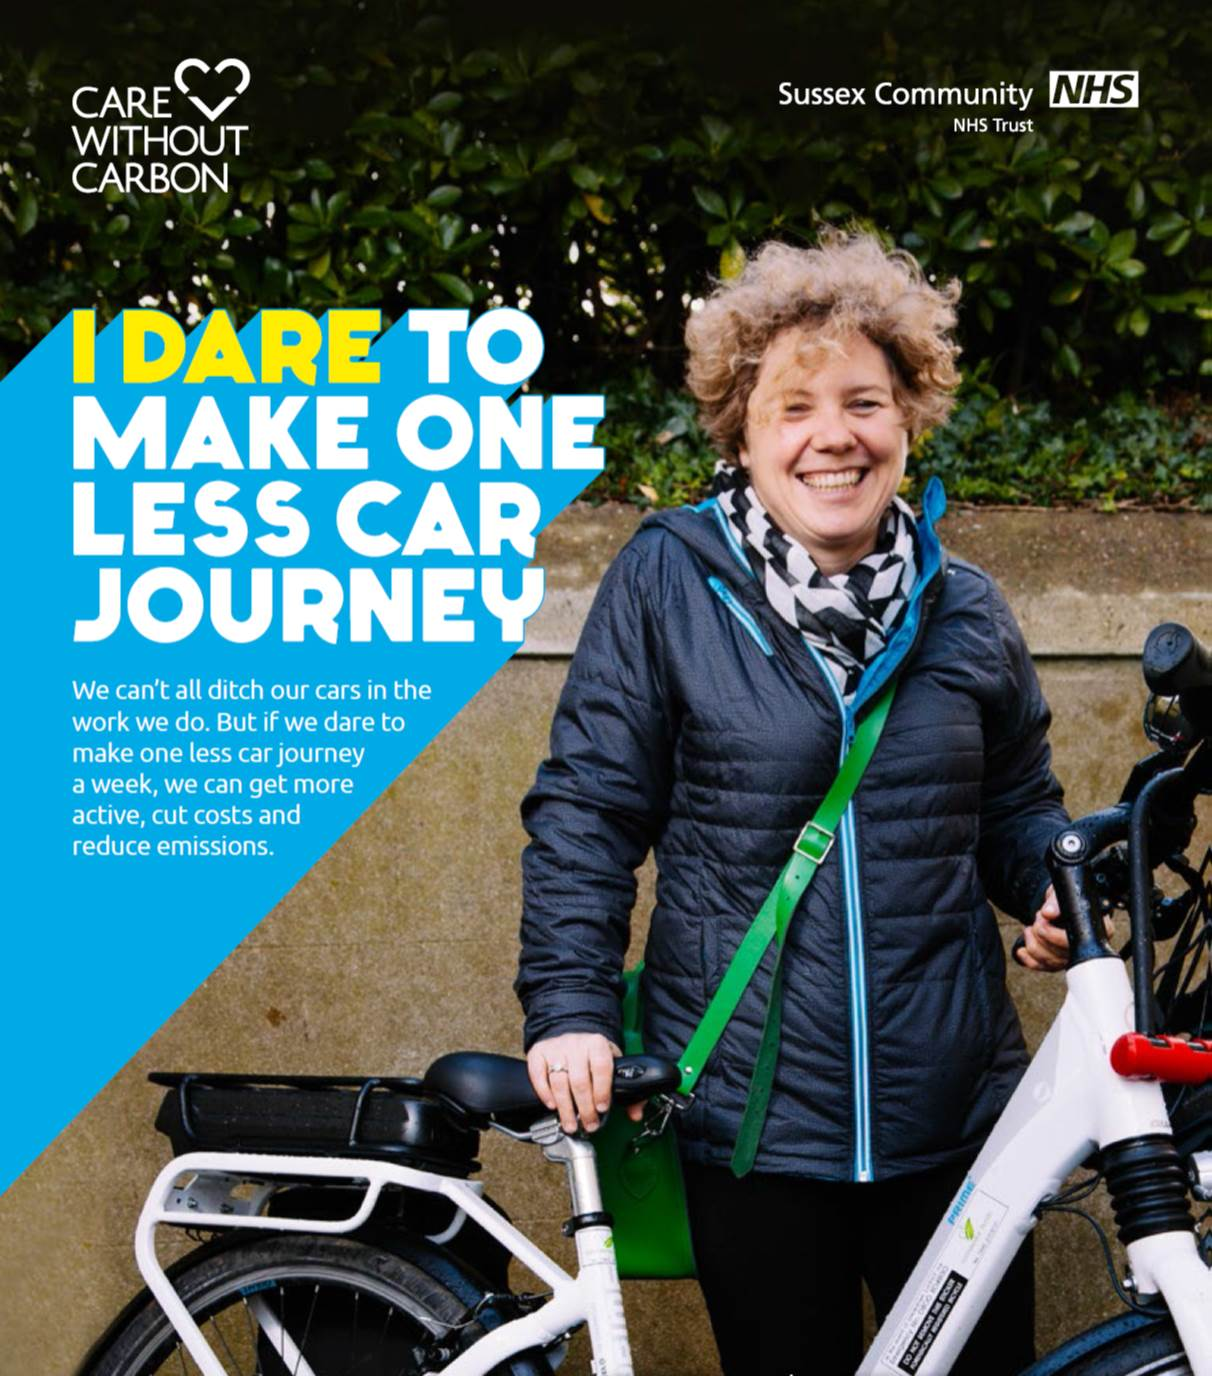 Marie Newton - daring to make one less car journey a week